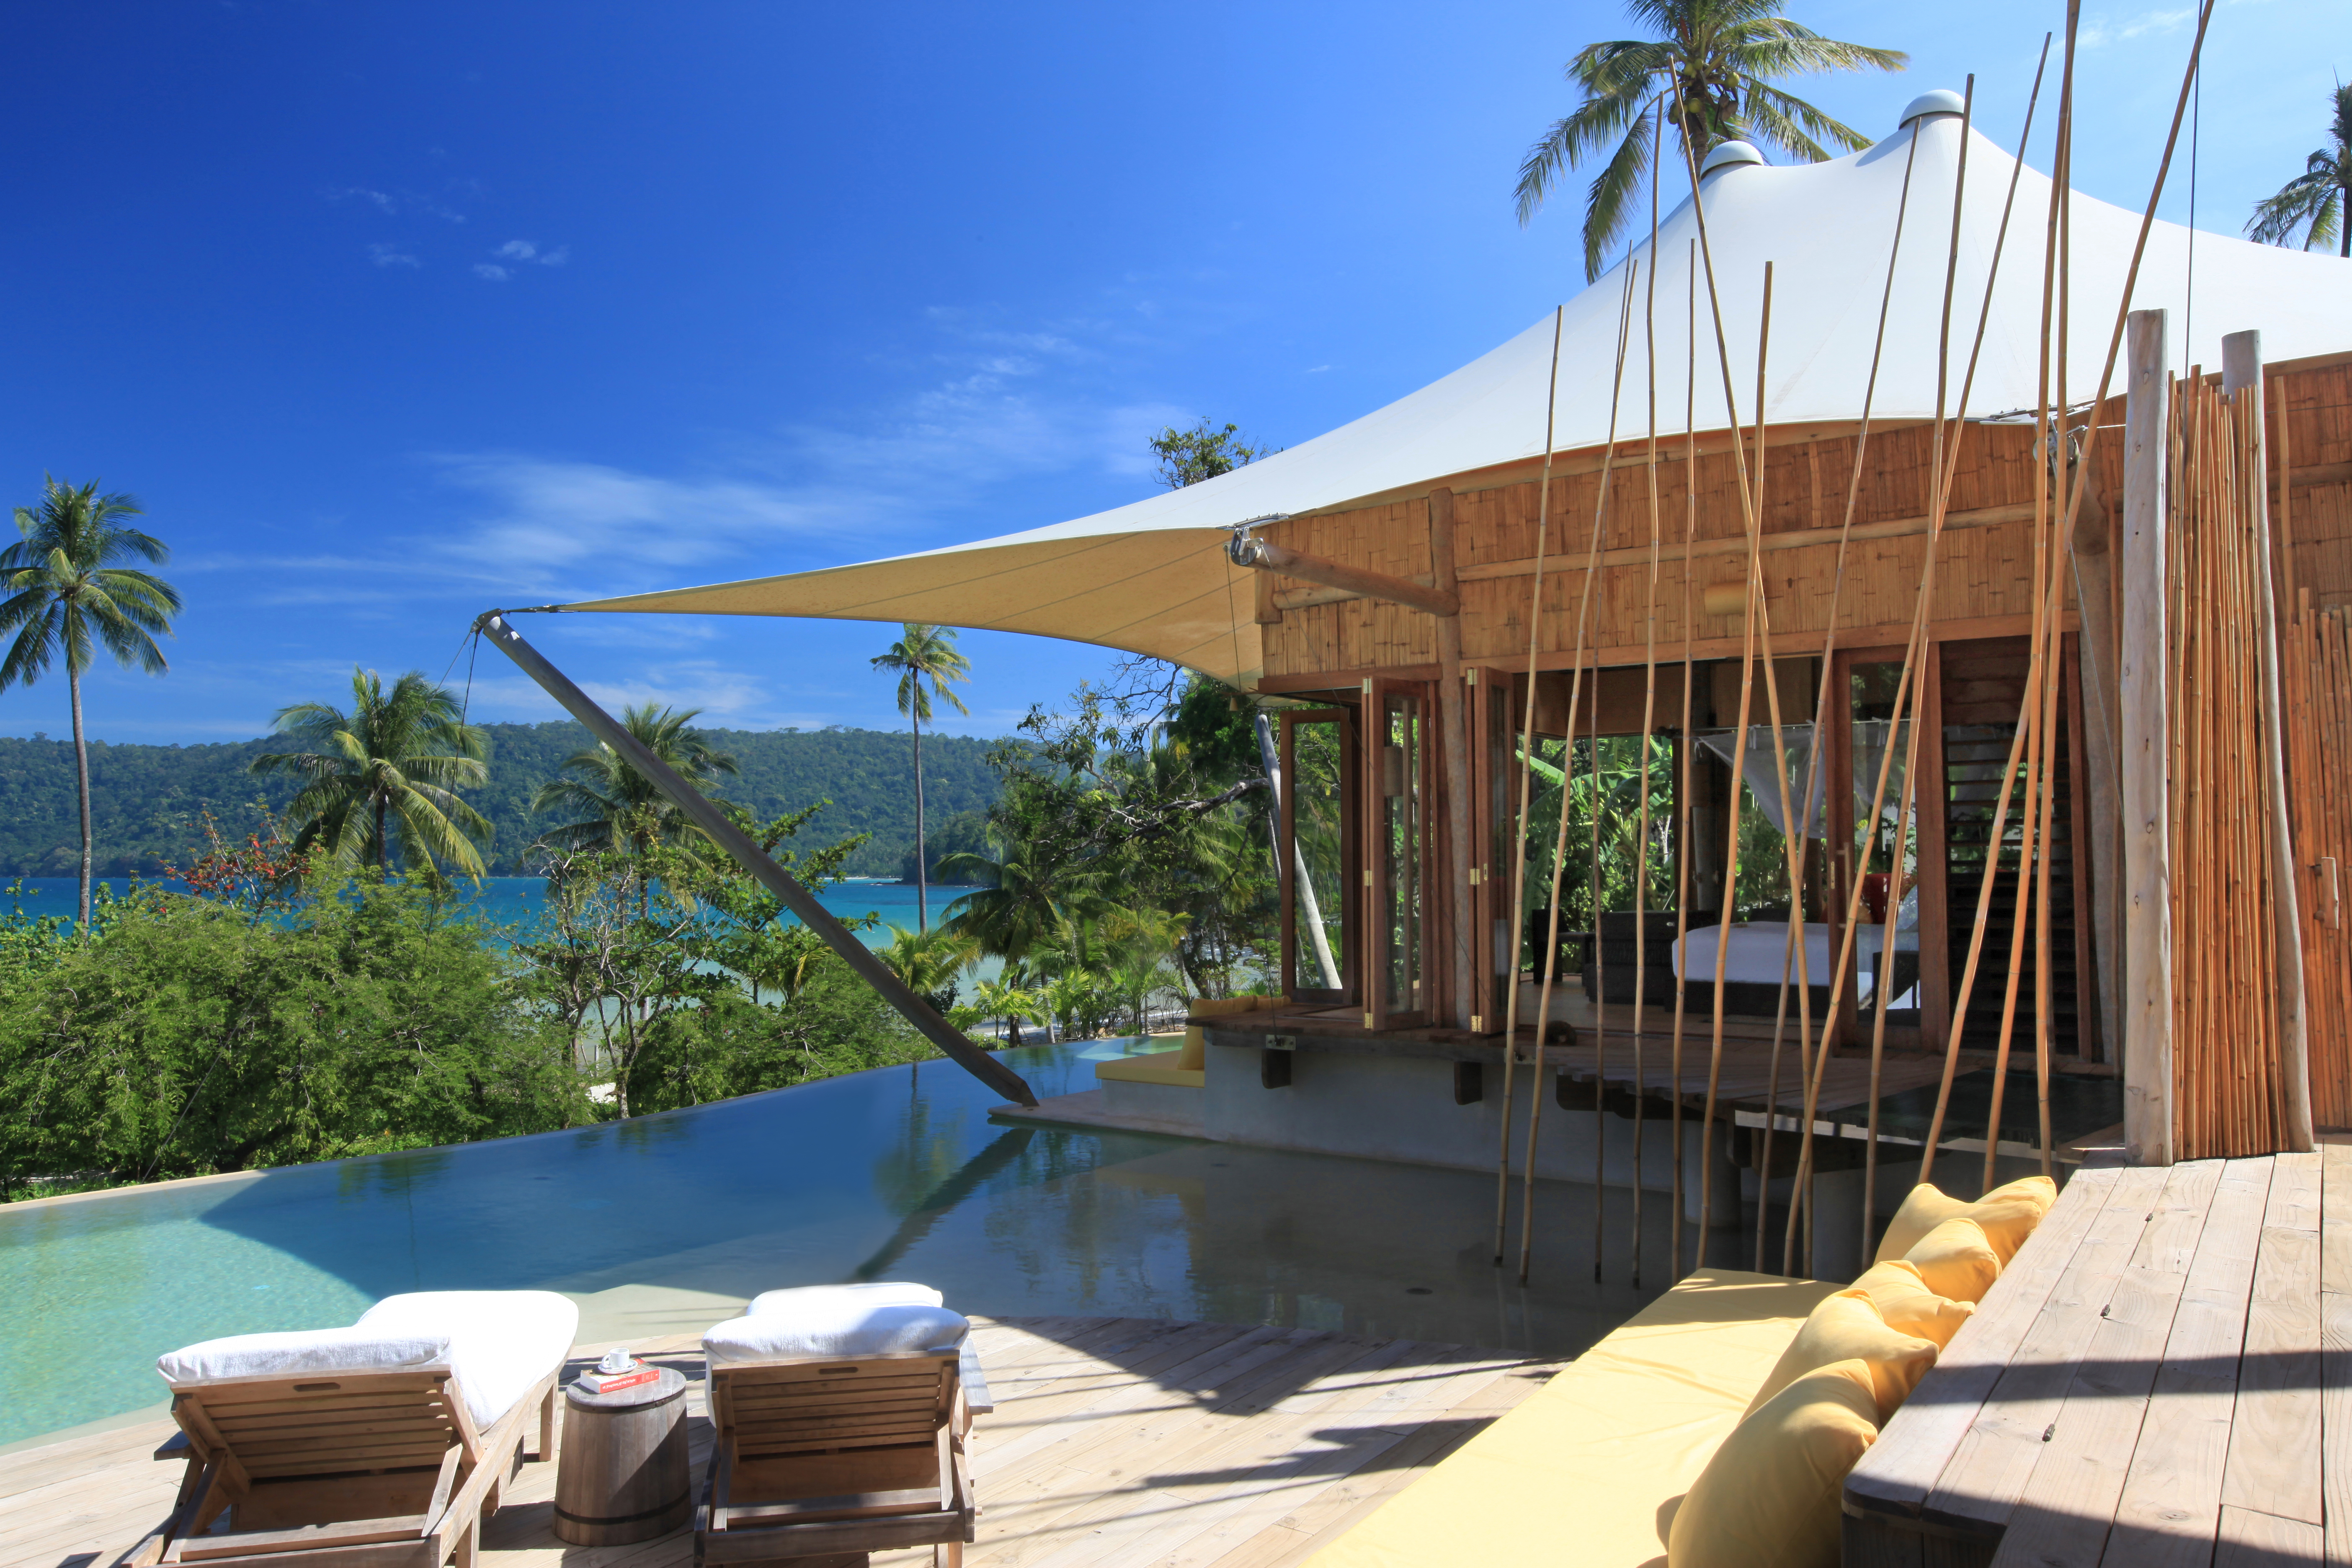 Hot hotel soneva kiri thailand thedesignair for Les plus belles villa